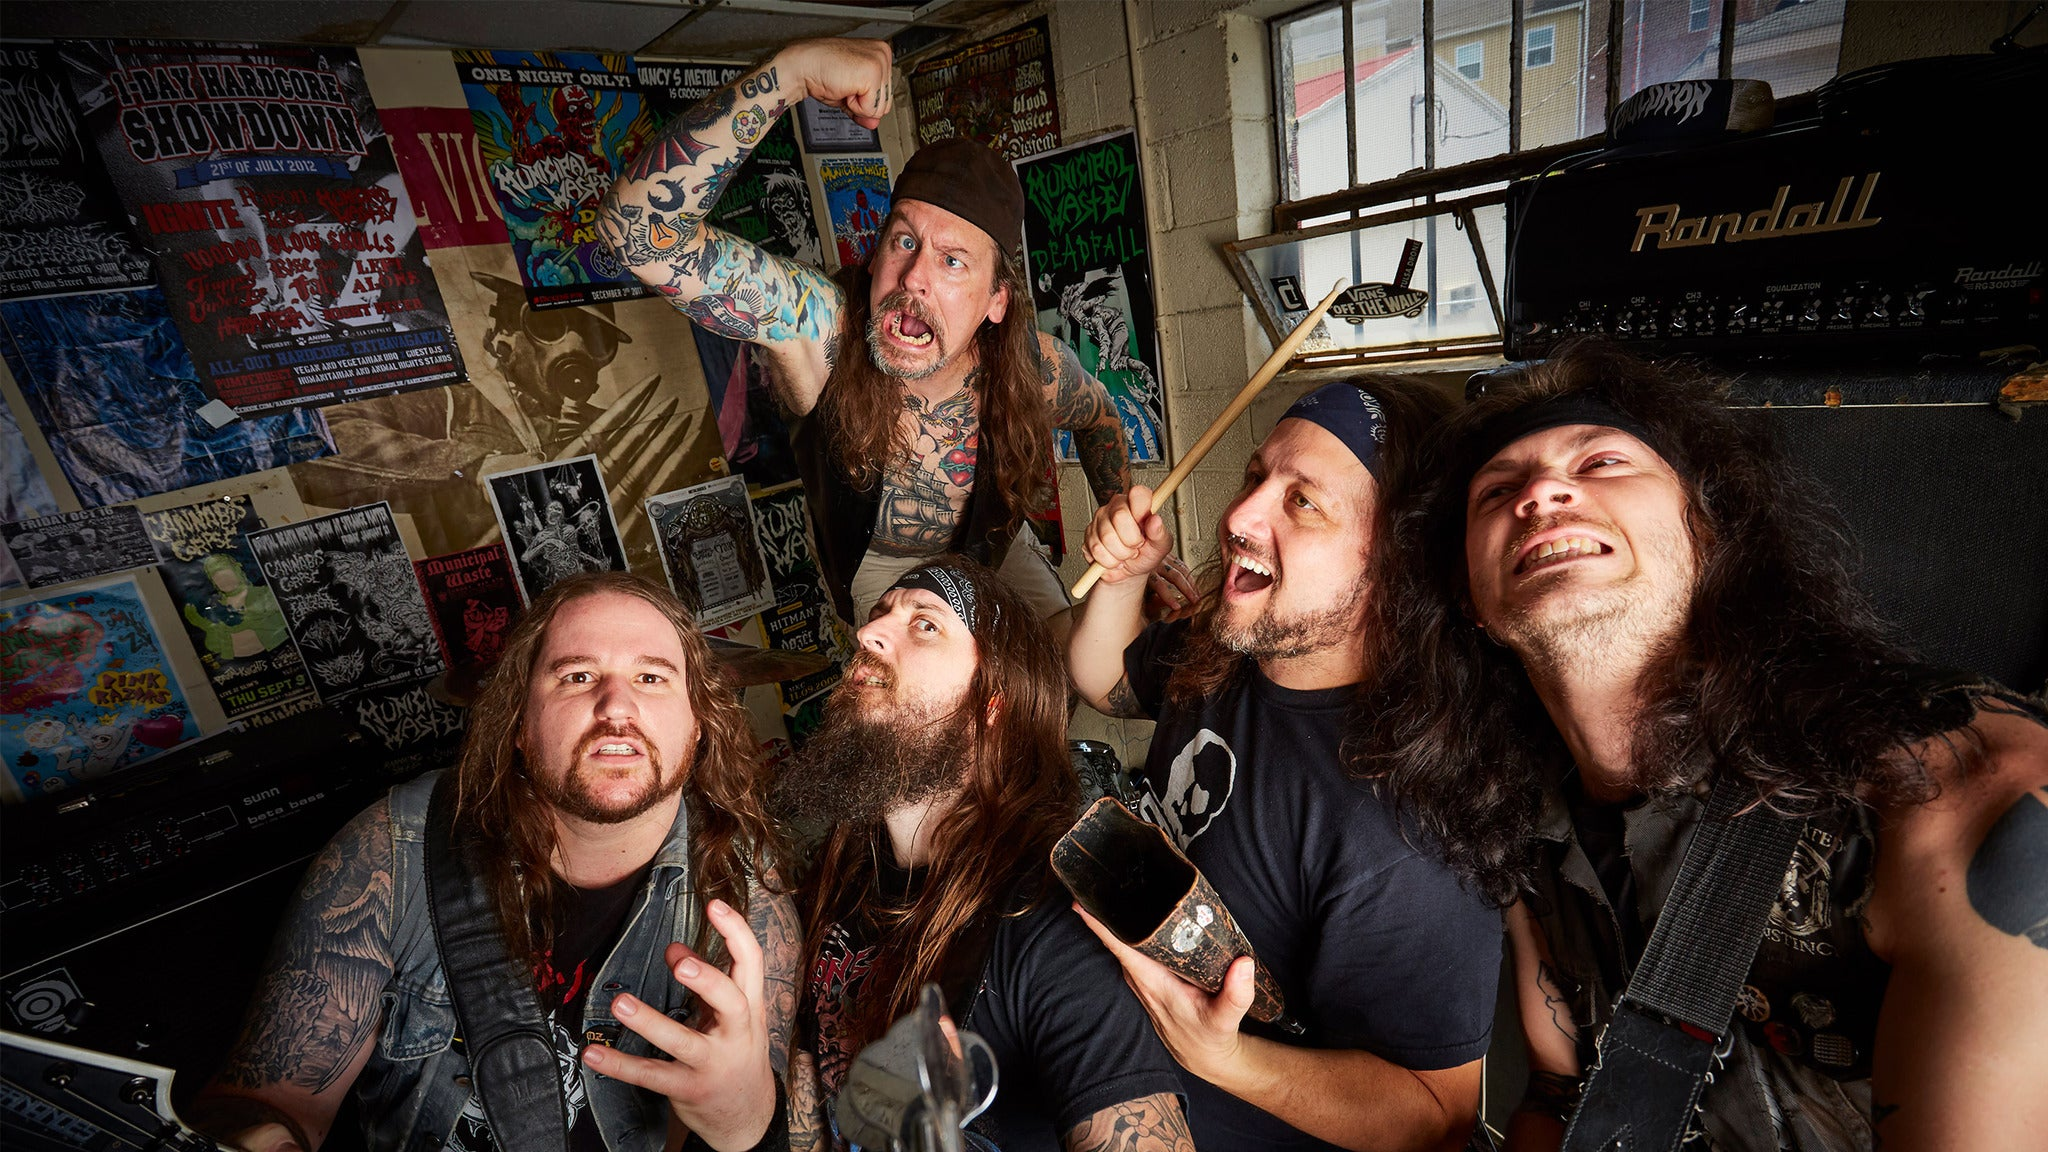 Municipal Waste & High on Fire at Ace of Spades